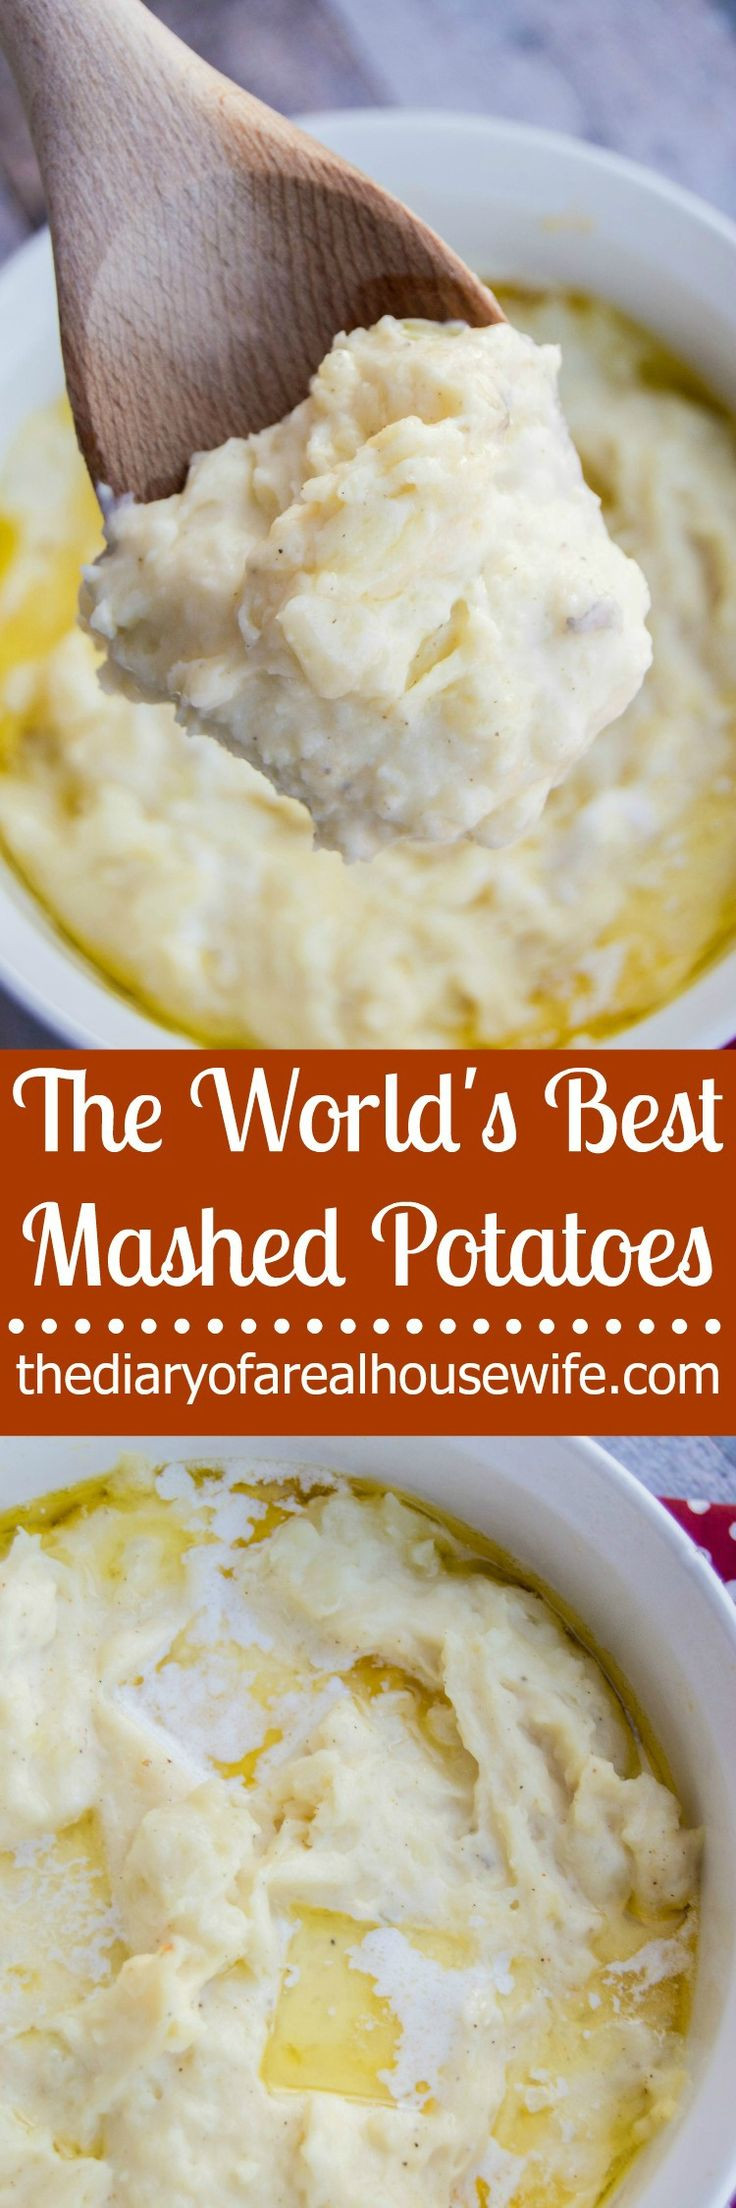 Best Thanksgiving Mashed Potatoes Recipe  Best 25 Thanksgiving recipes ideas on Pinterest